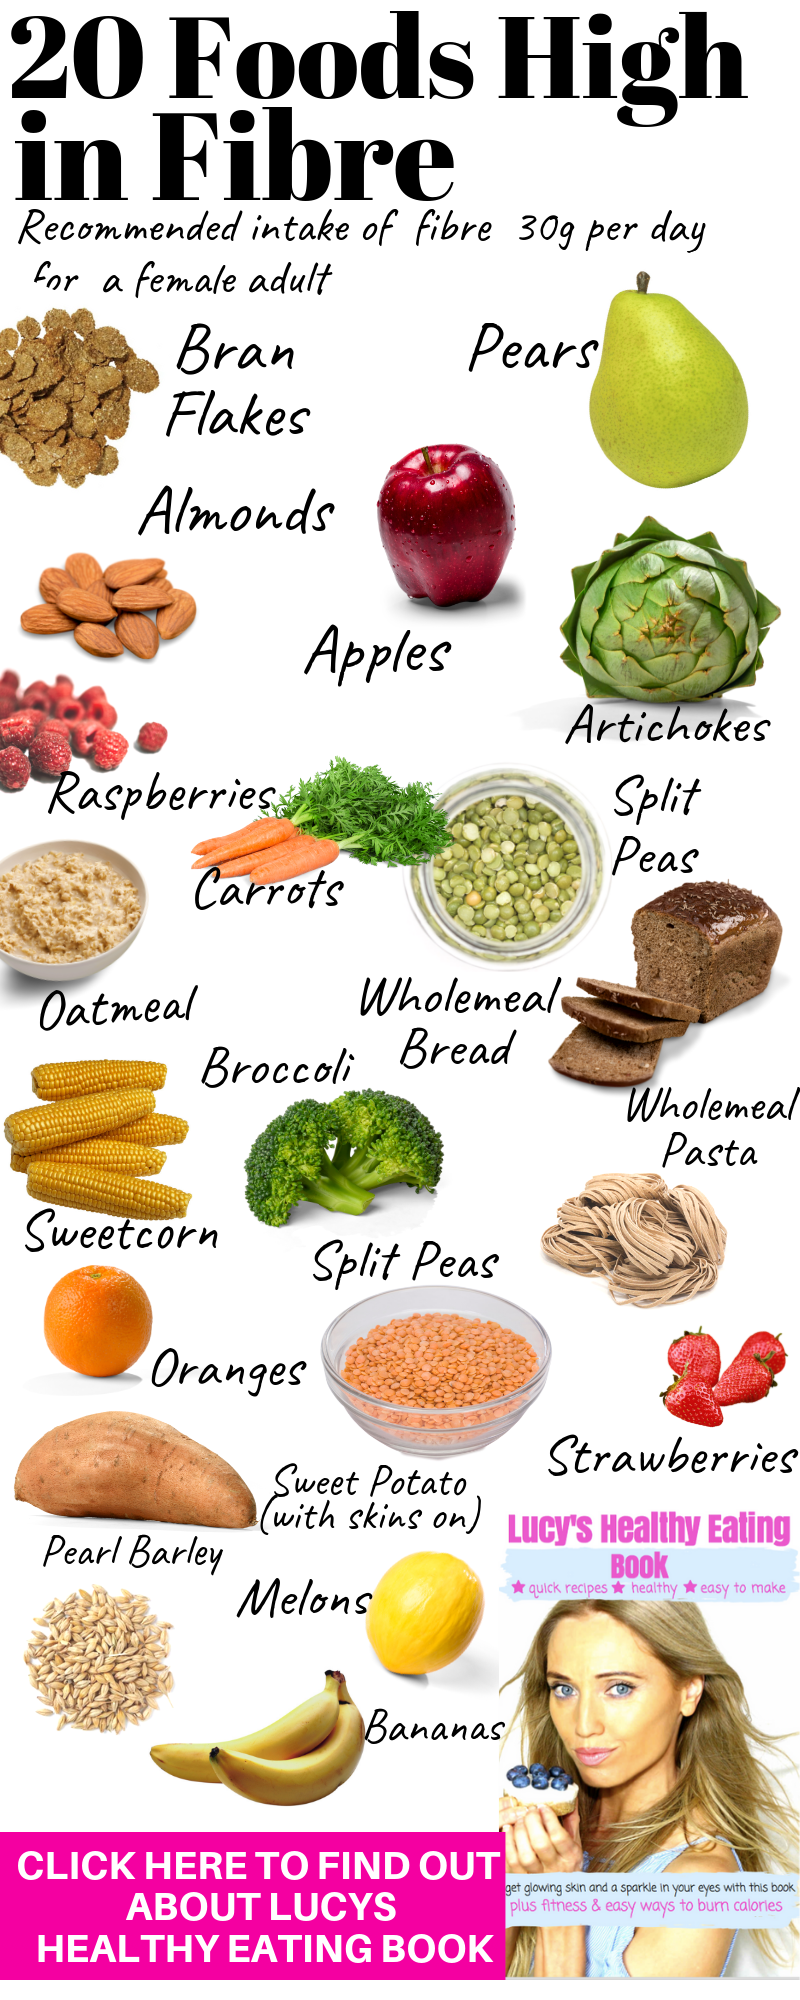 Foods High in Fibre #nutritionhealthyeating